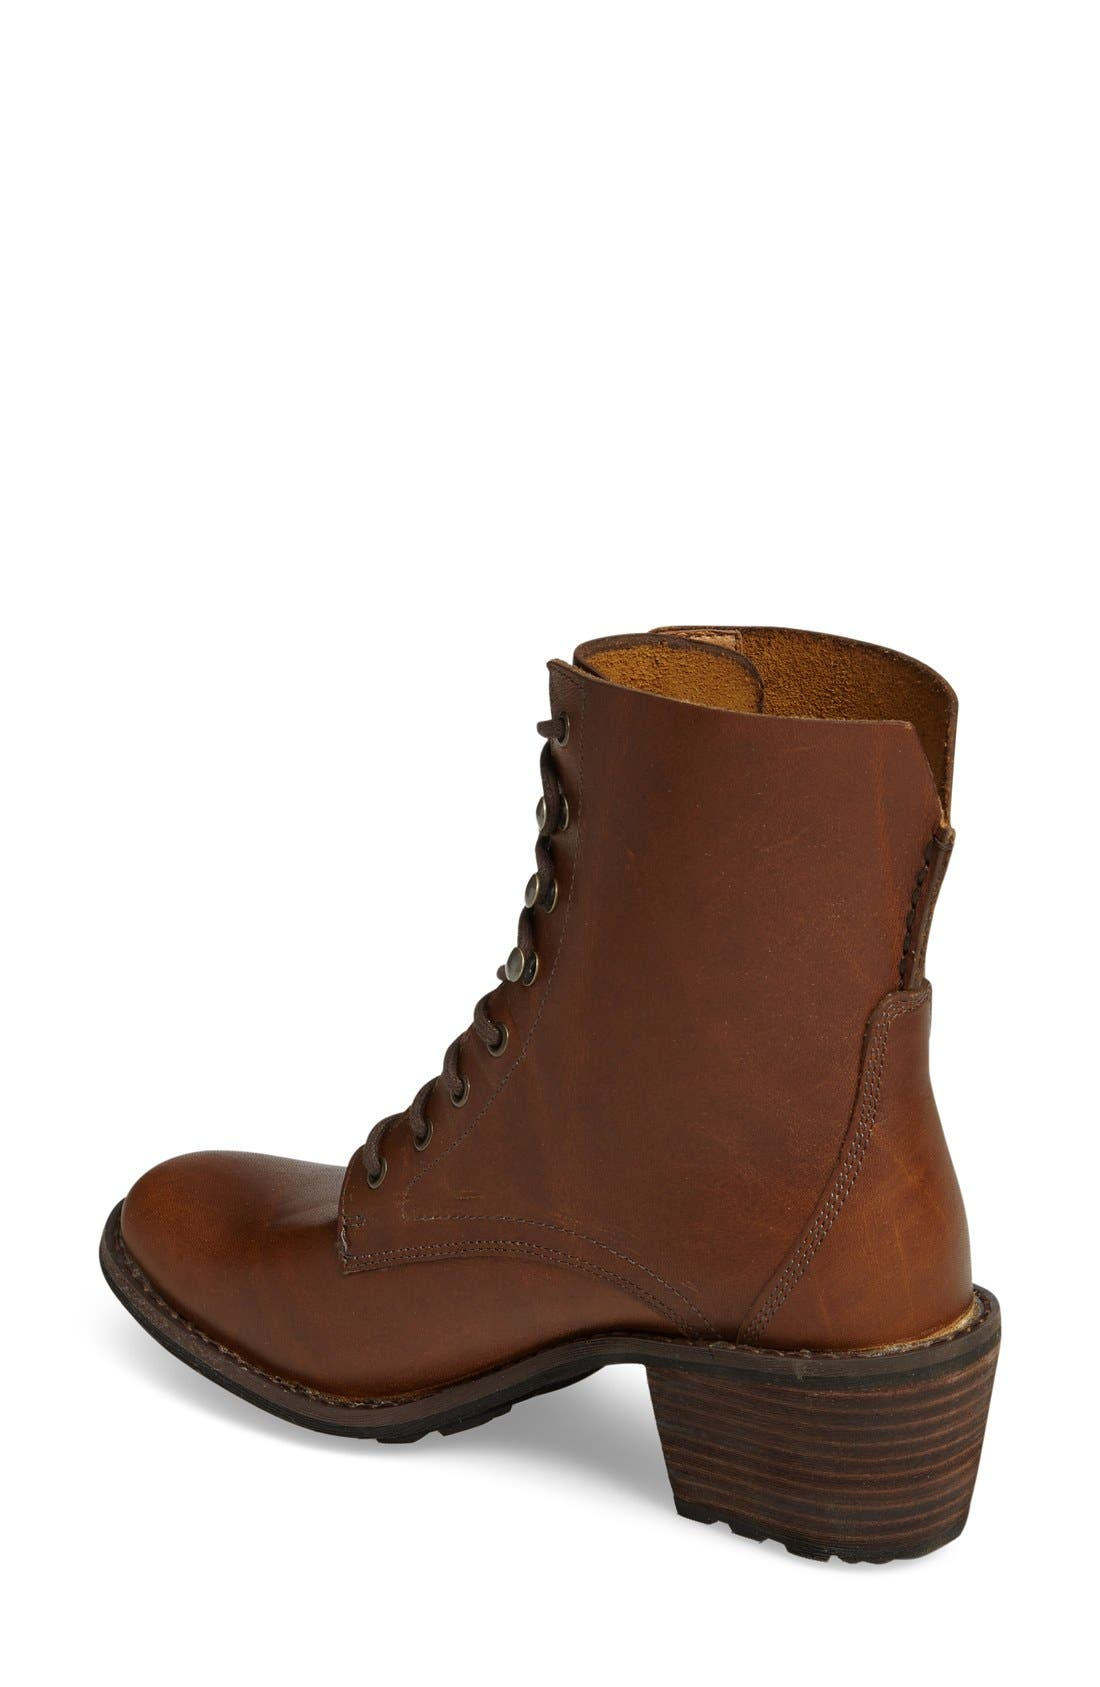 Western Territory Water Resistant Bootie,                             Alternate thumbnail 2, color,                             Ginger Leather